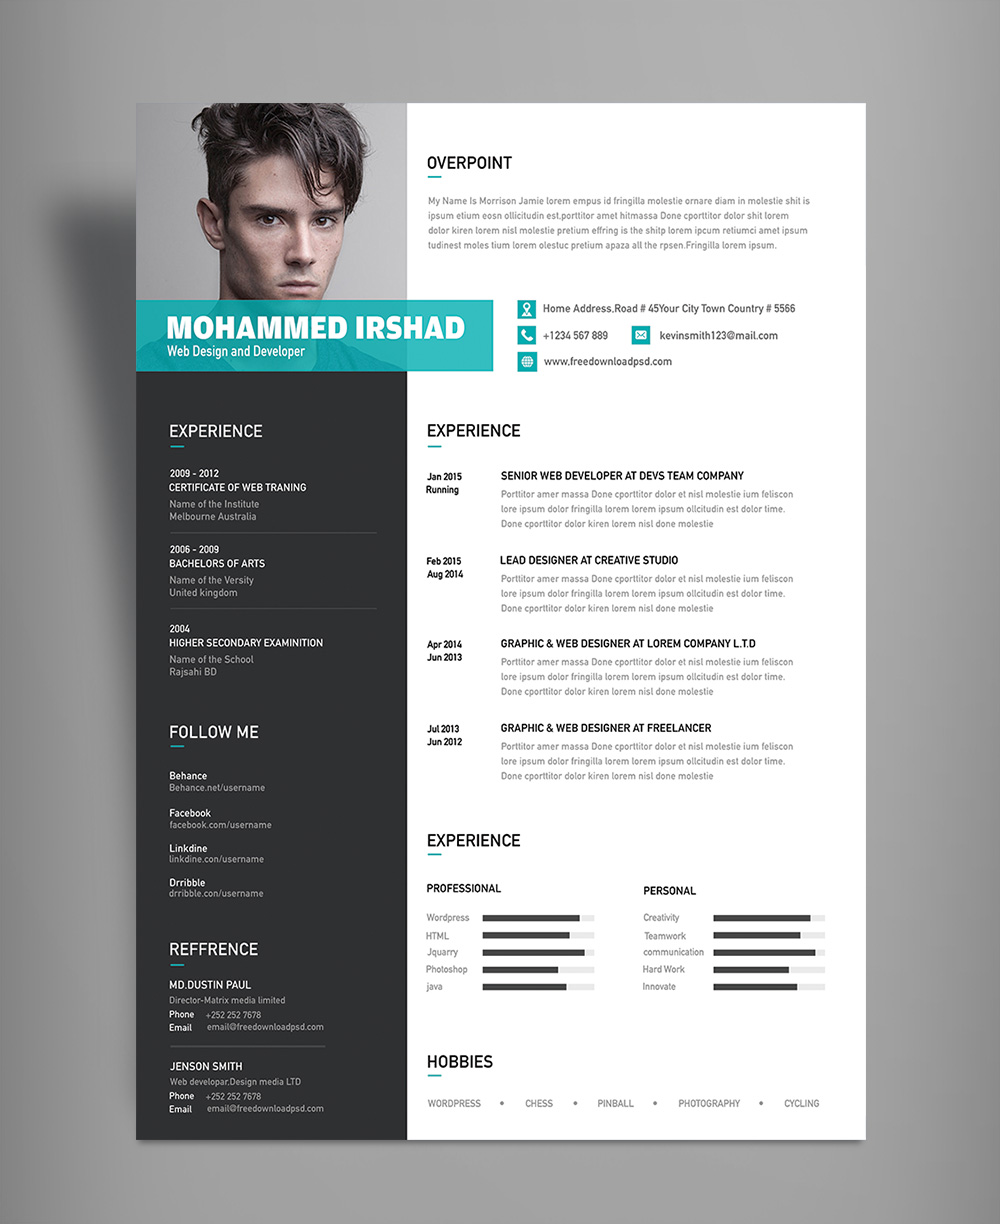 Free Modern Resume (CV) Design Template PSD File (3)